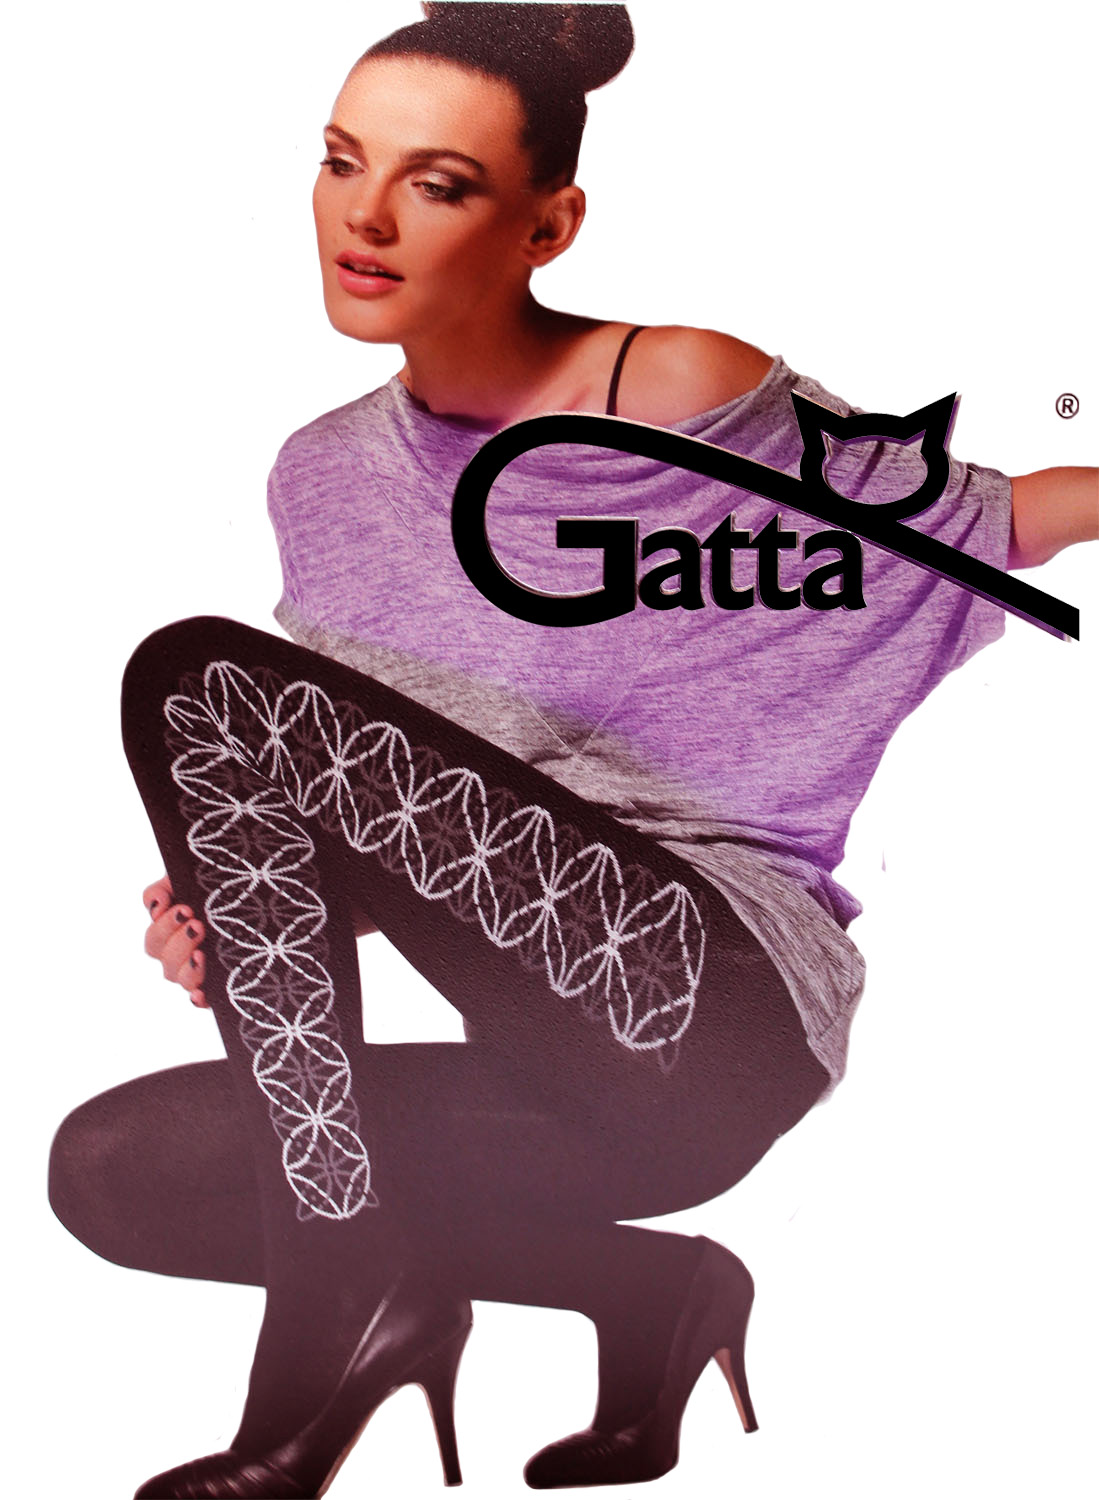 Gatta Fashion Carena 08M